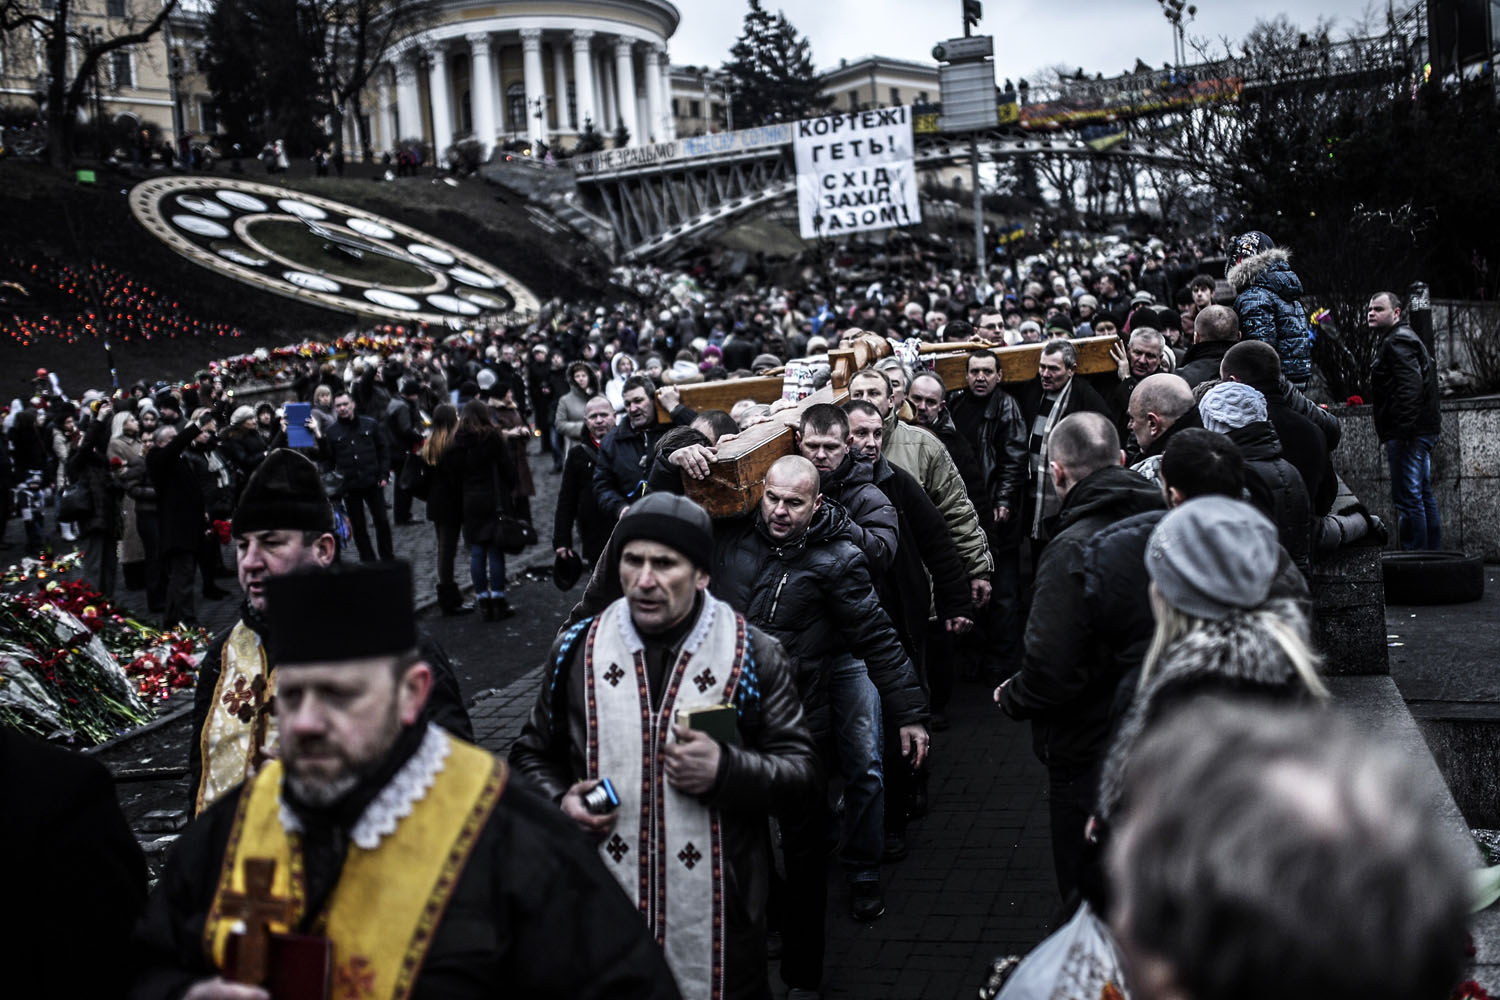 People hold a large crucifix during a procession at Kiev's Independence Square, Feb. 25, 2014.